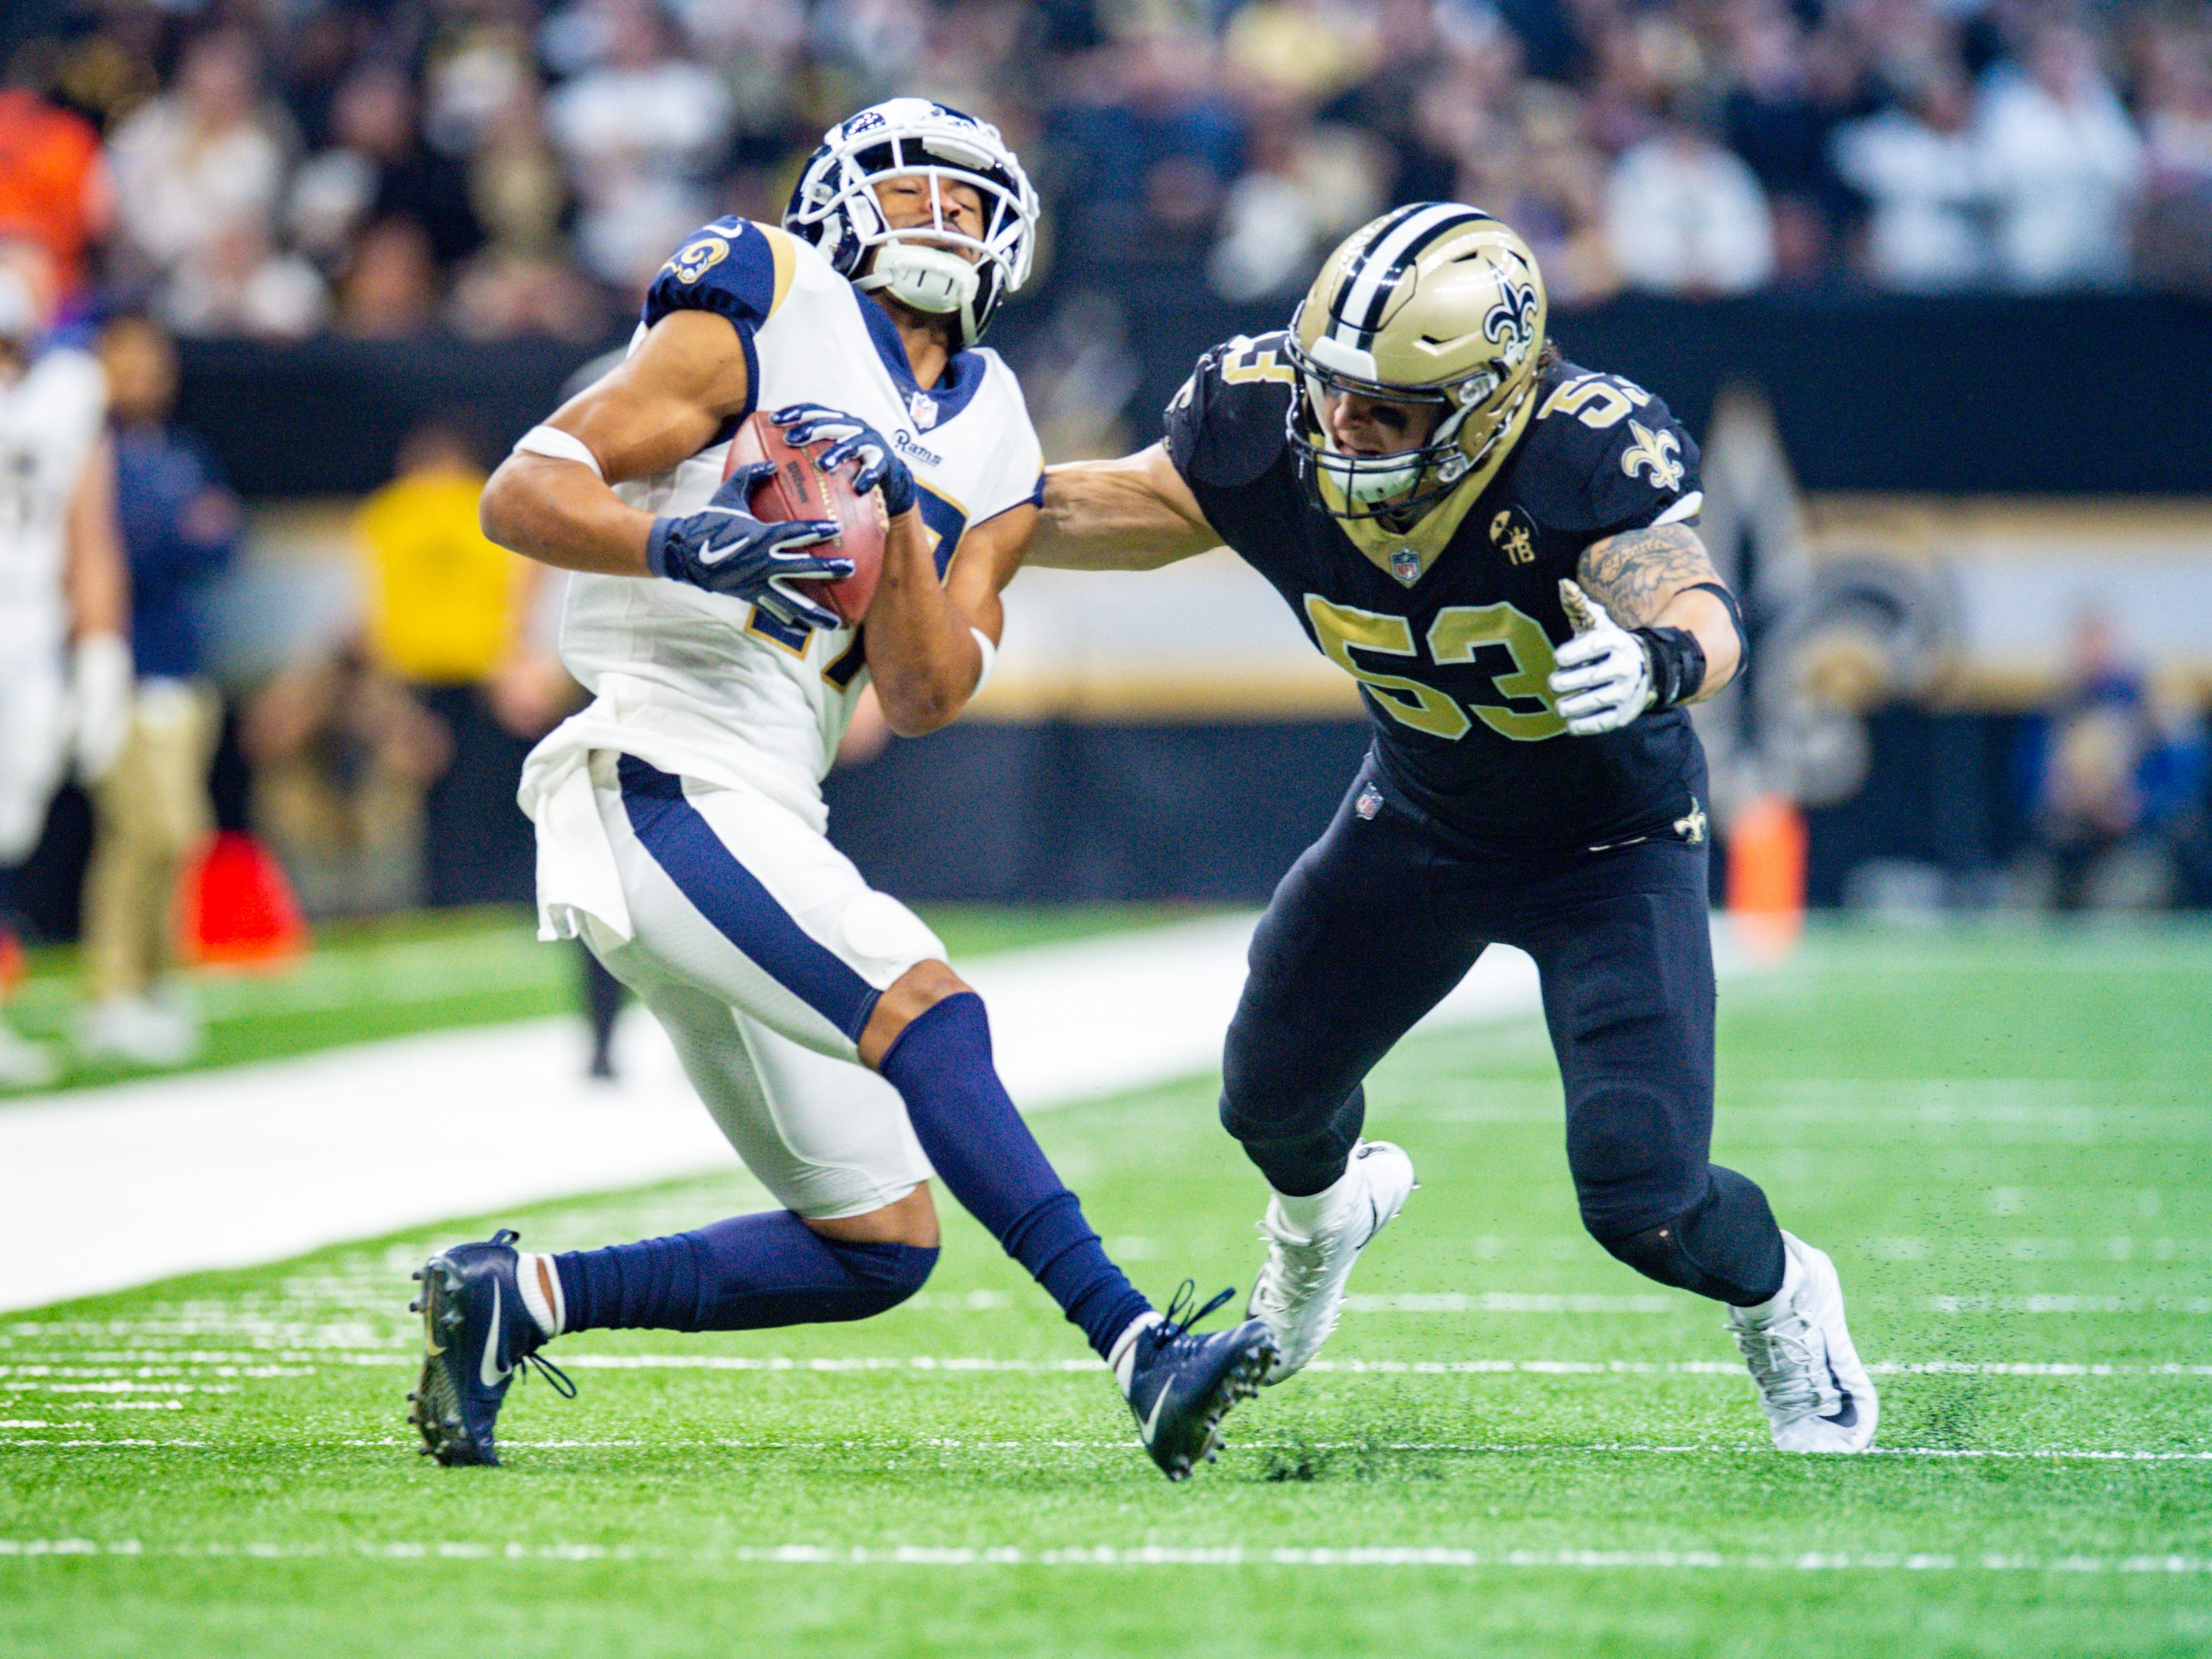 Saints AJ Klein makes a tackle during the NFC Championship playoff football game between the New Orleans Saints and the Los Angeles Rams at the Mercedes-Benz Superdome in New Orleans. Sunday, Jan. 20, 2019.